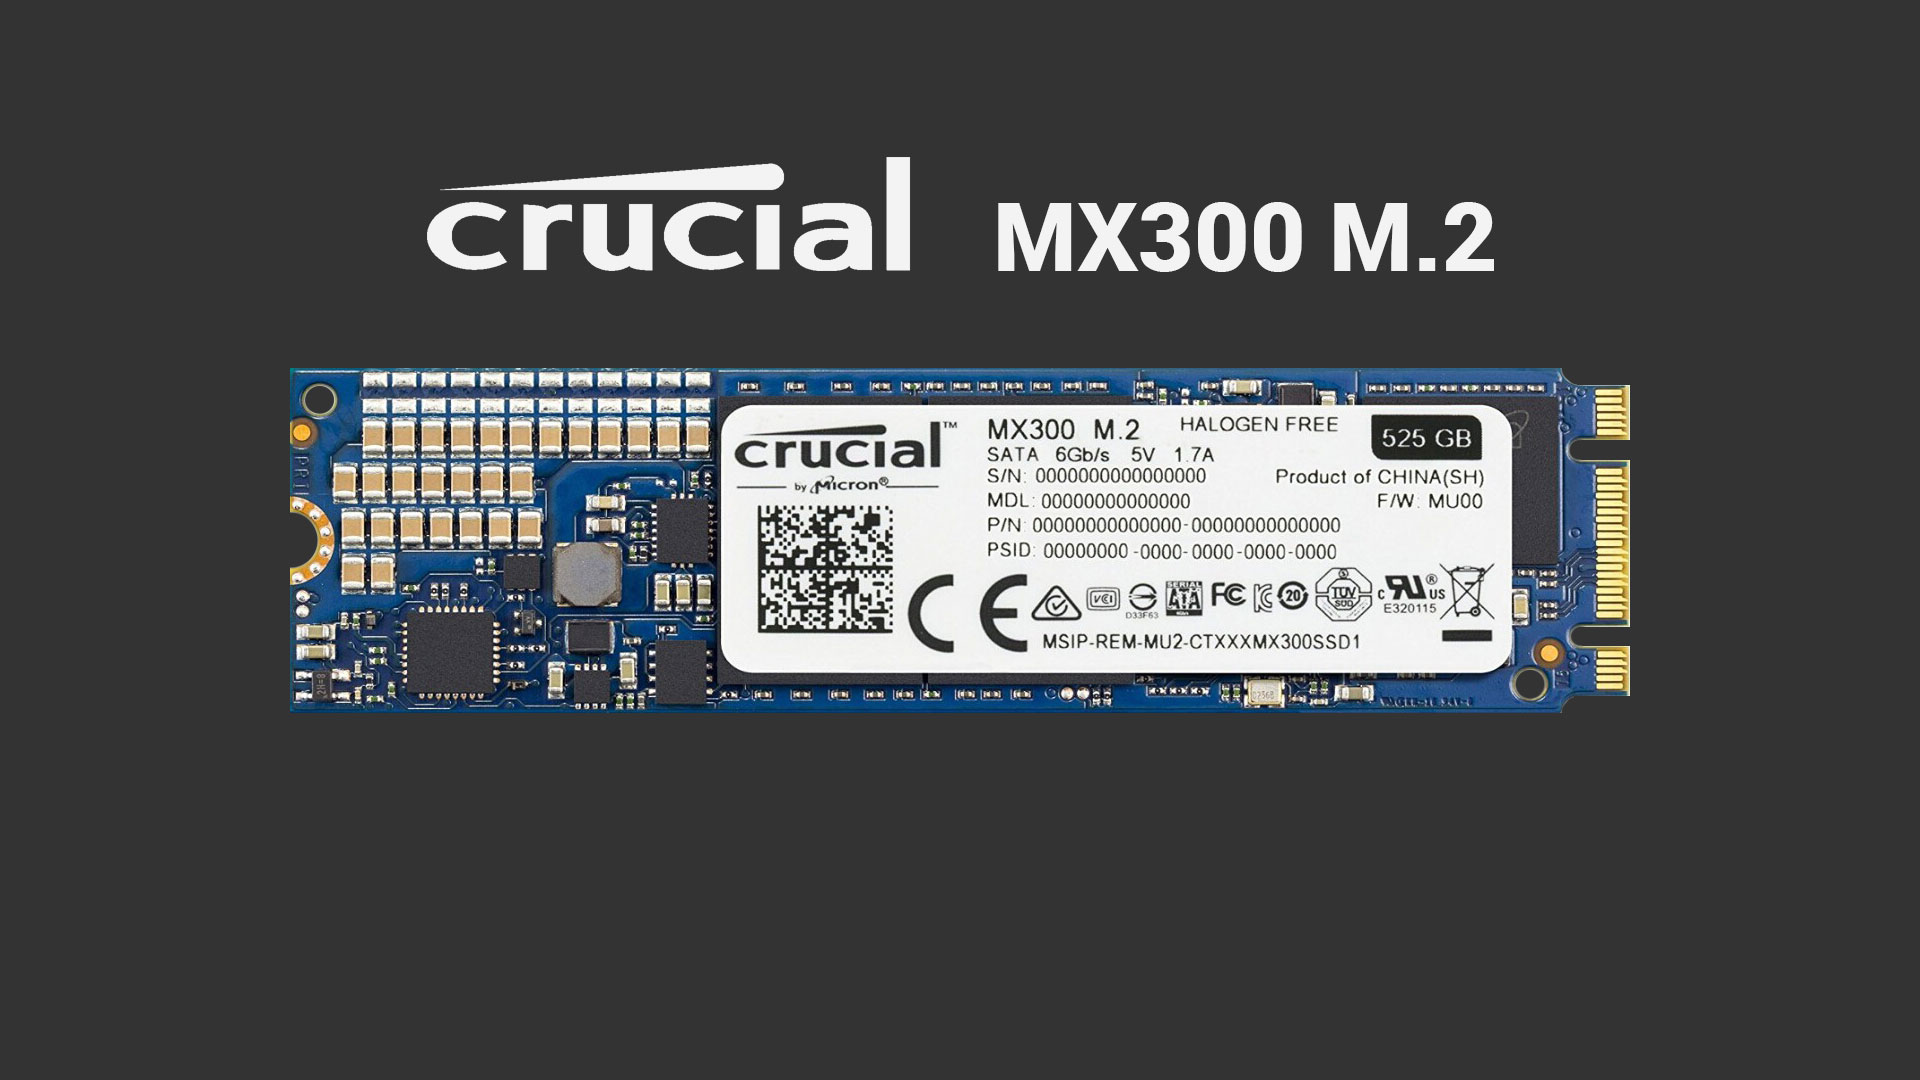 Crucial MX300 M.2 Review